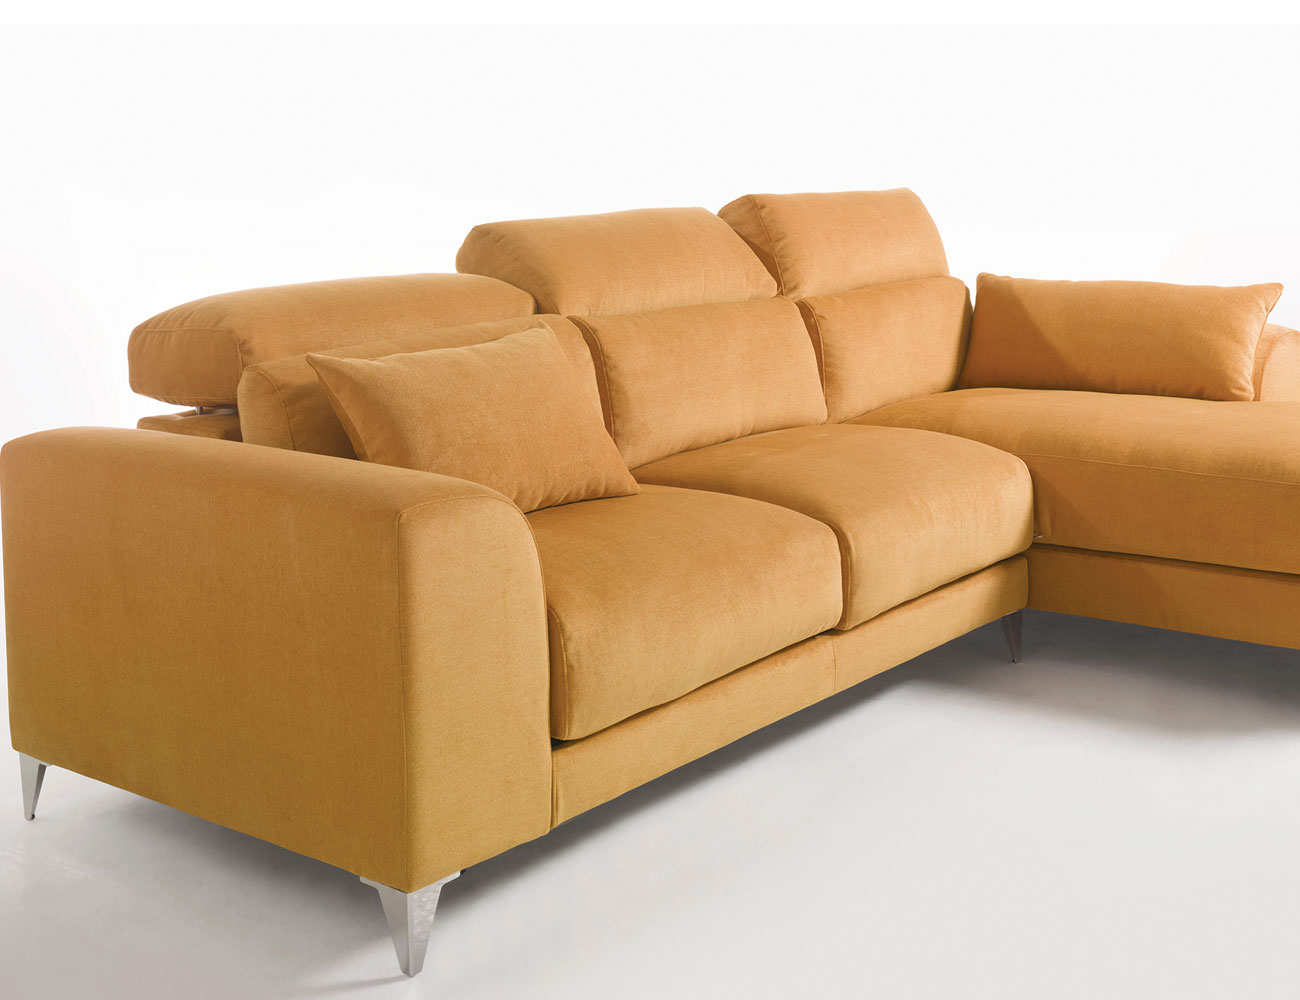 Sofa chaiselongue gran lujo decorativo patas altas amarillo 244